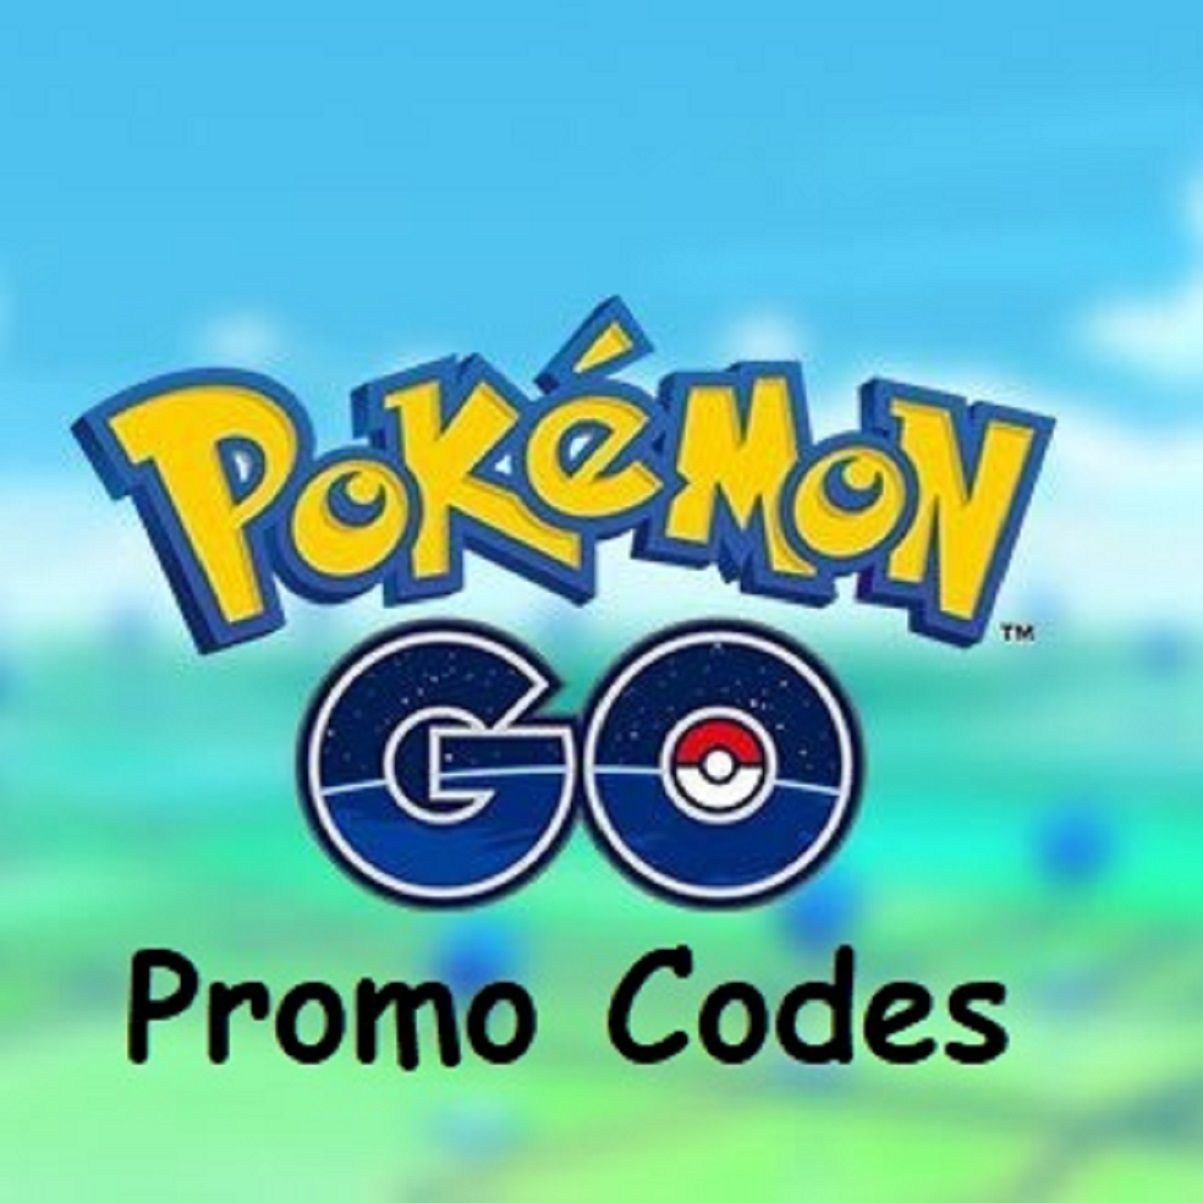 Pokemon Go Promo Codes In 2020 Code Pokemon Pokemon Go Free Promo Codes